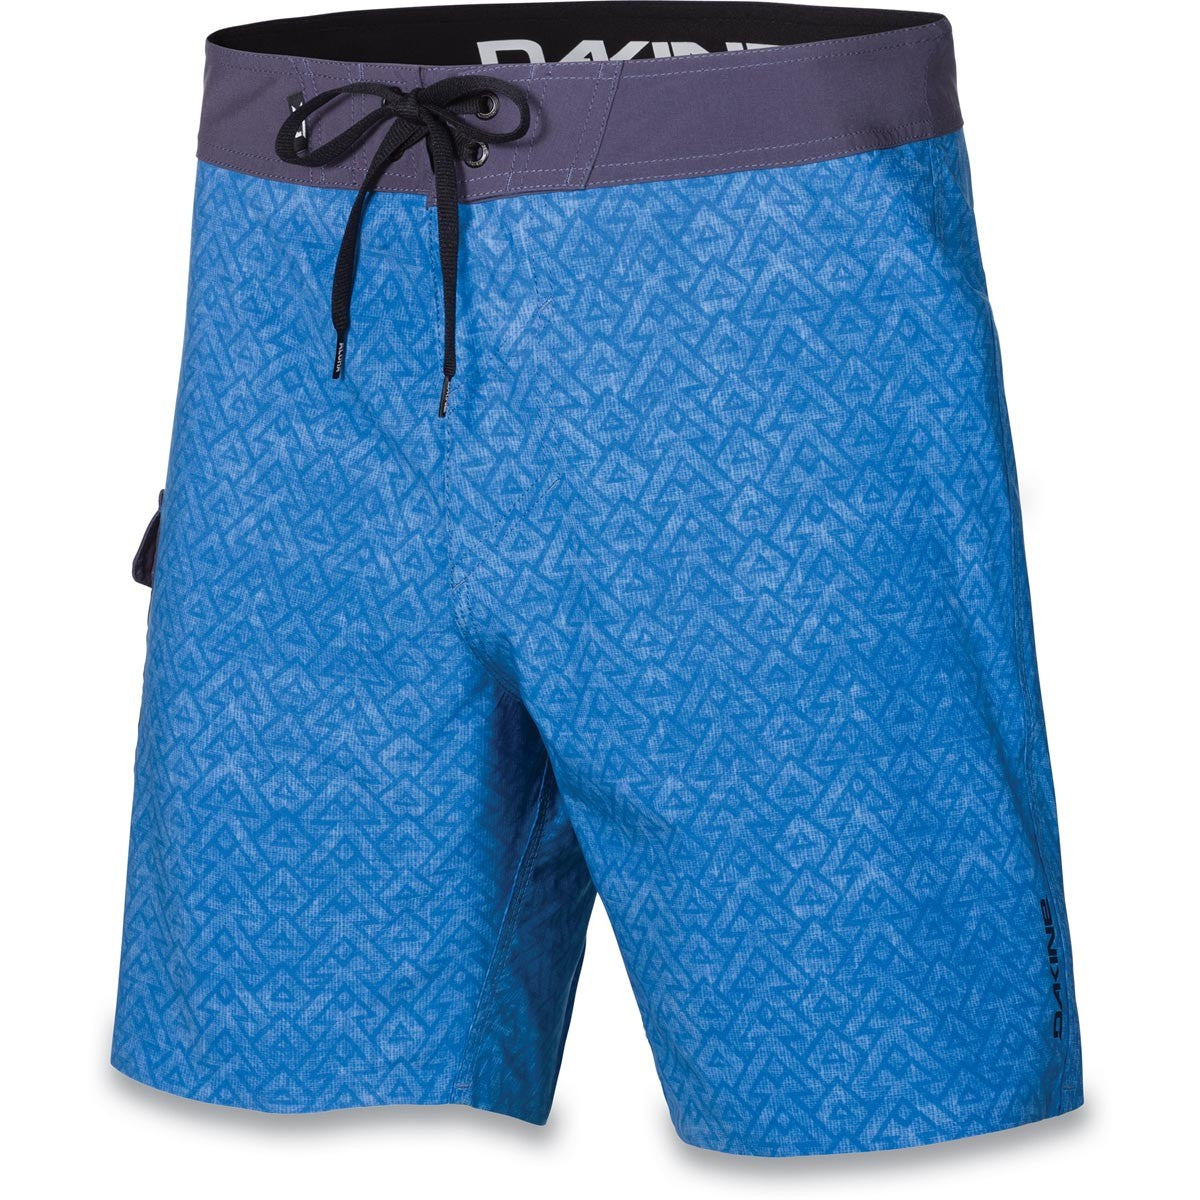 Prime Leader Mens Beach Shorts Timeless Ghost Girl Summer Casual Quick Dry Short Pants Stretch Swimming Trunks with Pocket